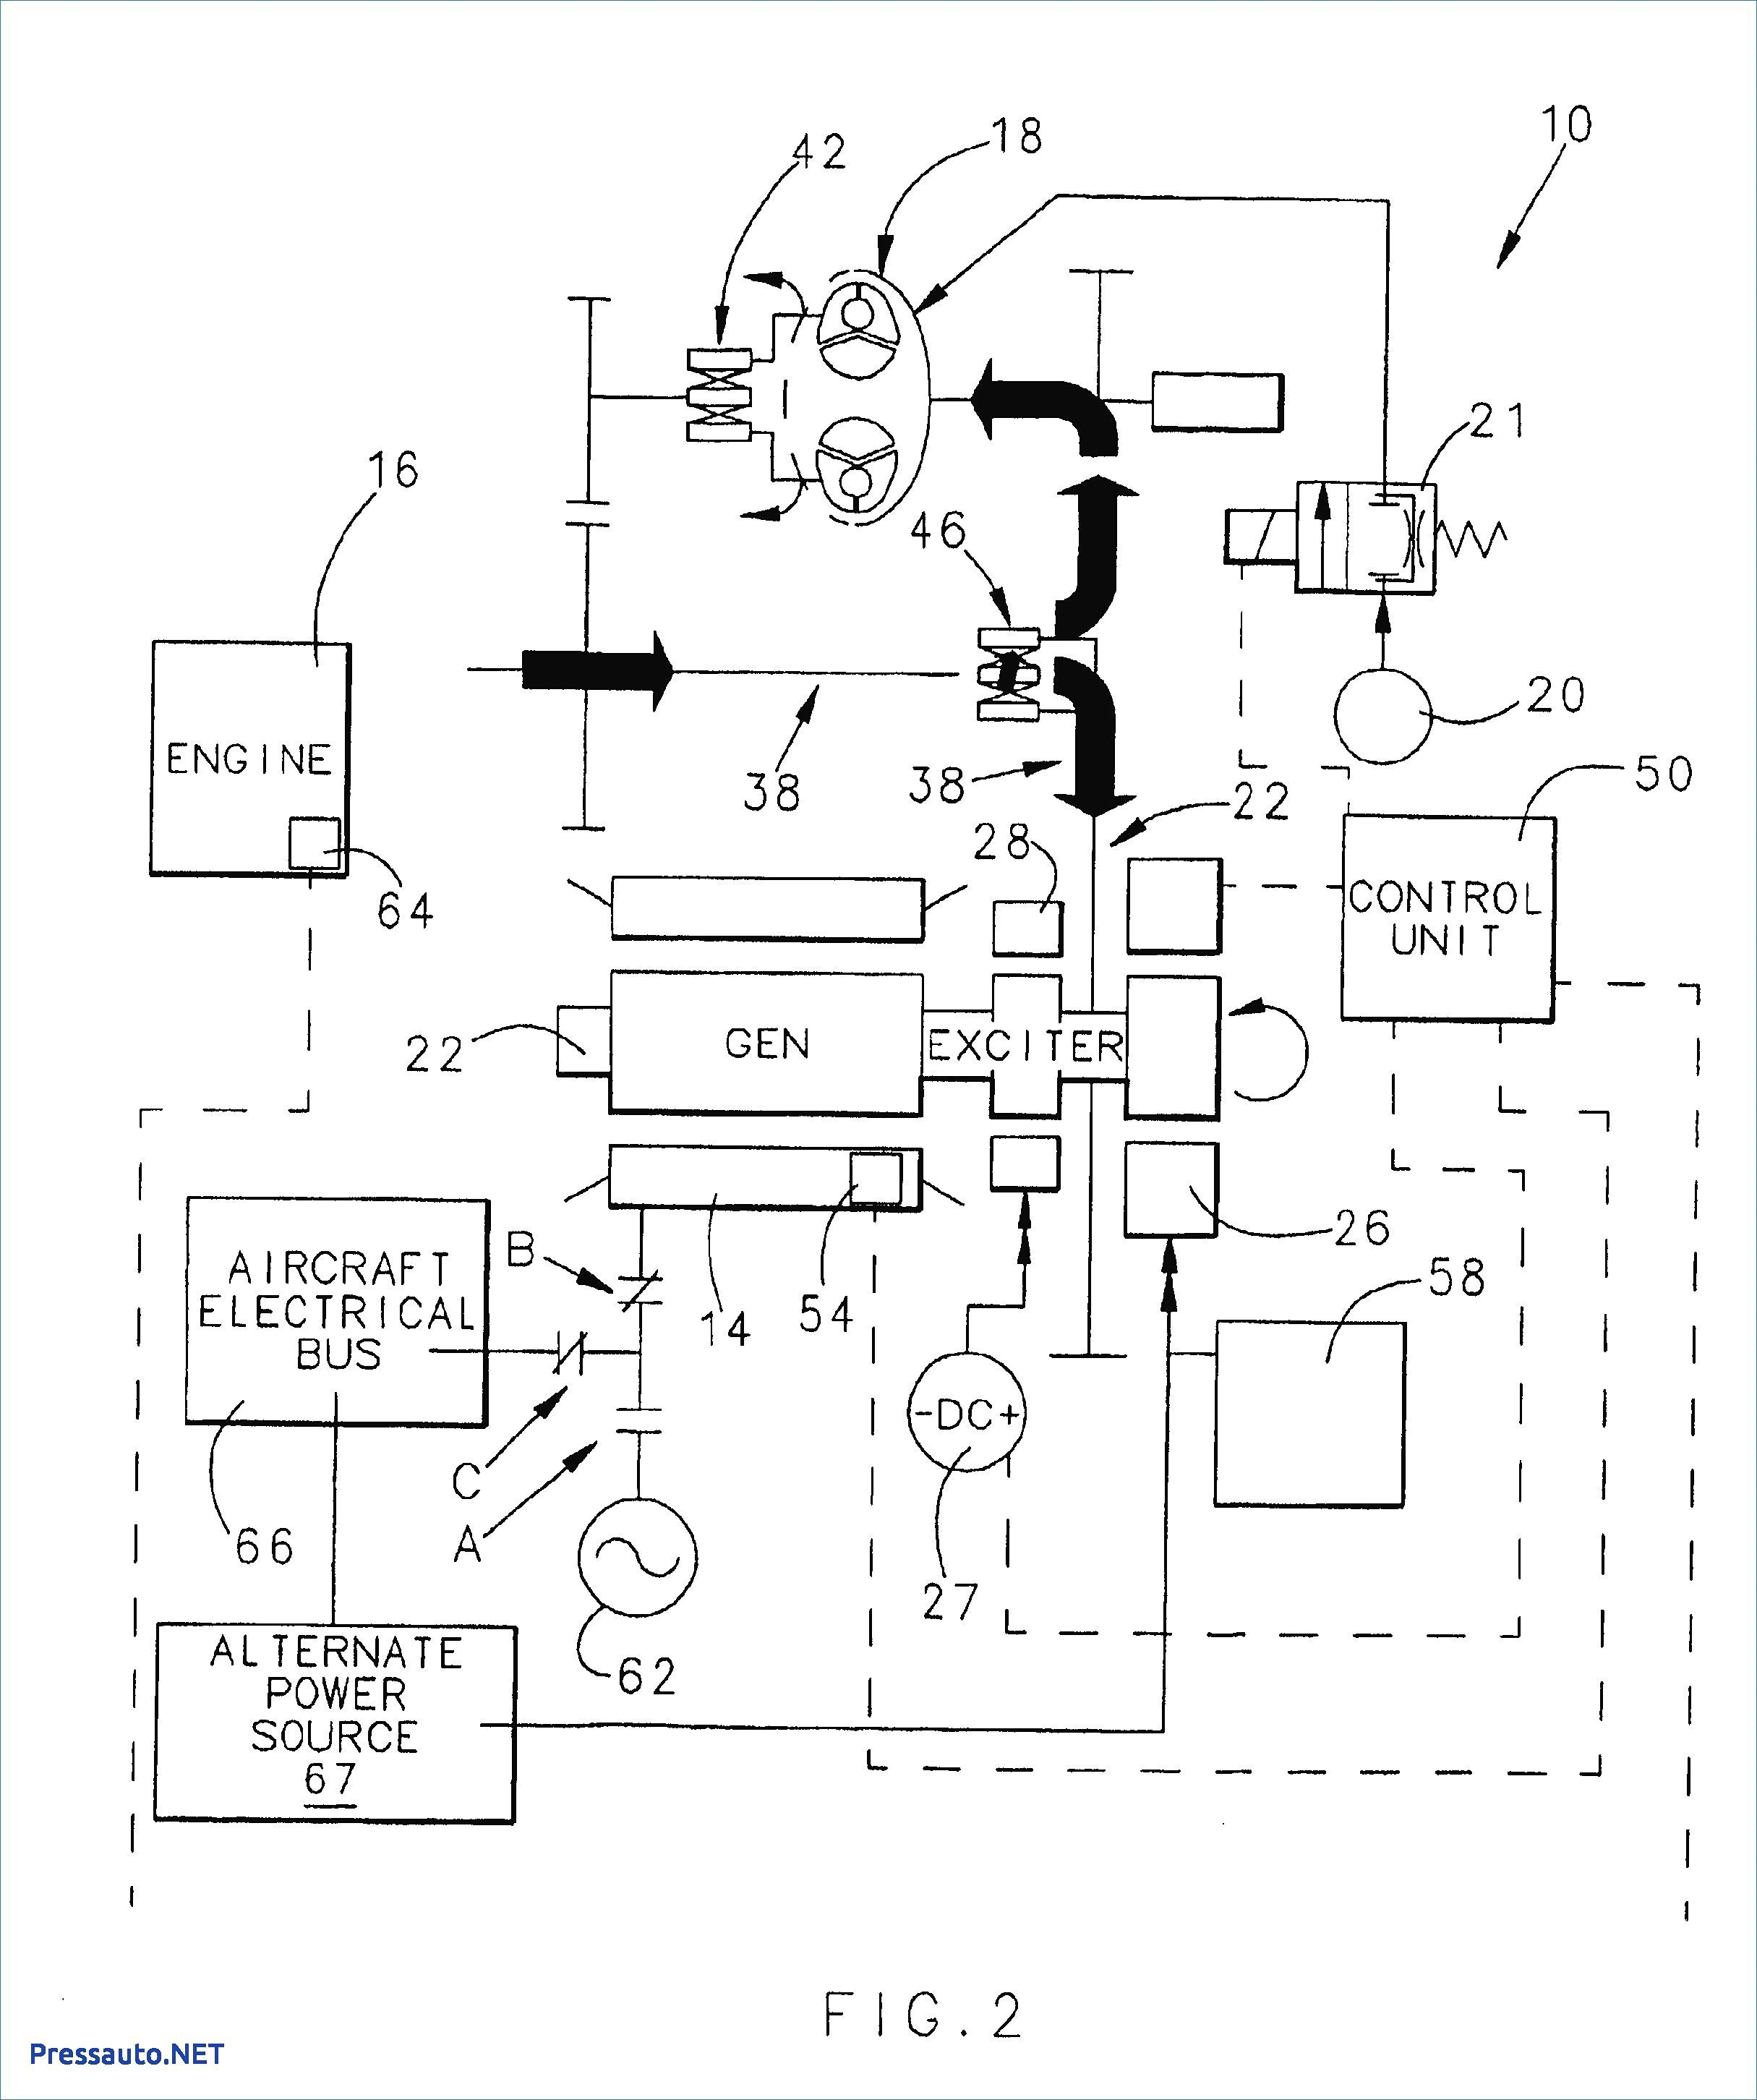 daihatsu cuore wiring diagram wiring schematic Basic Electrical Schematic Diagrams wiring diagram for daihatsu rocky worksheet and wiring diagram u2022 rh bookinc co